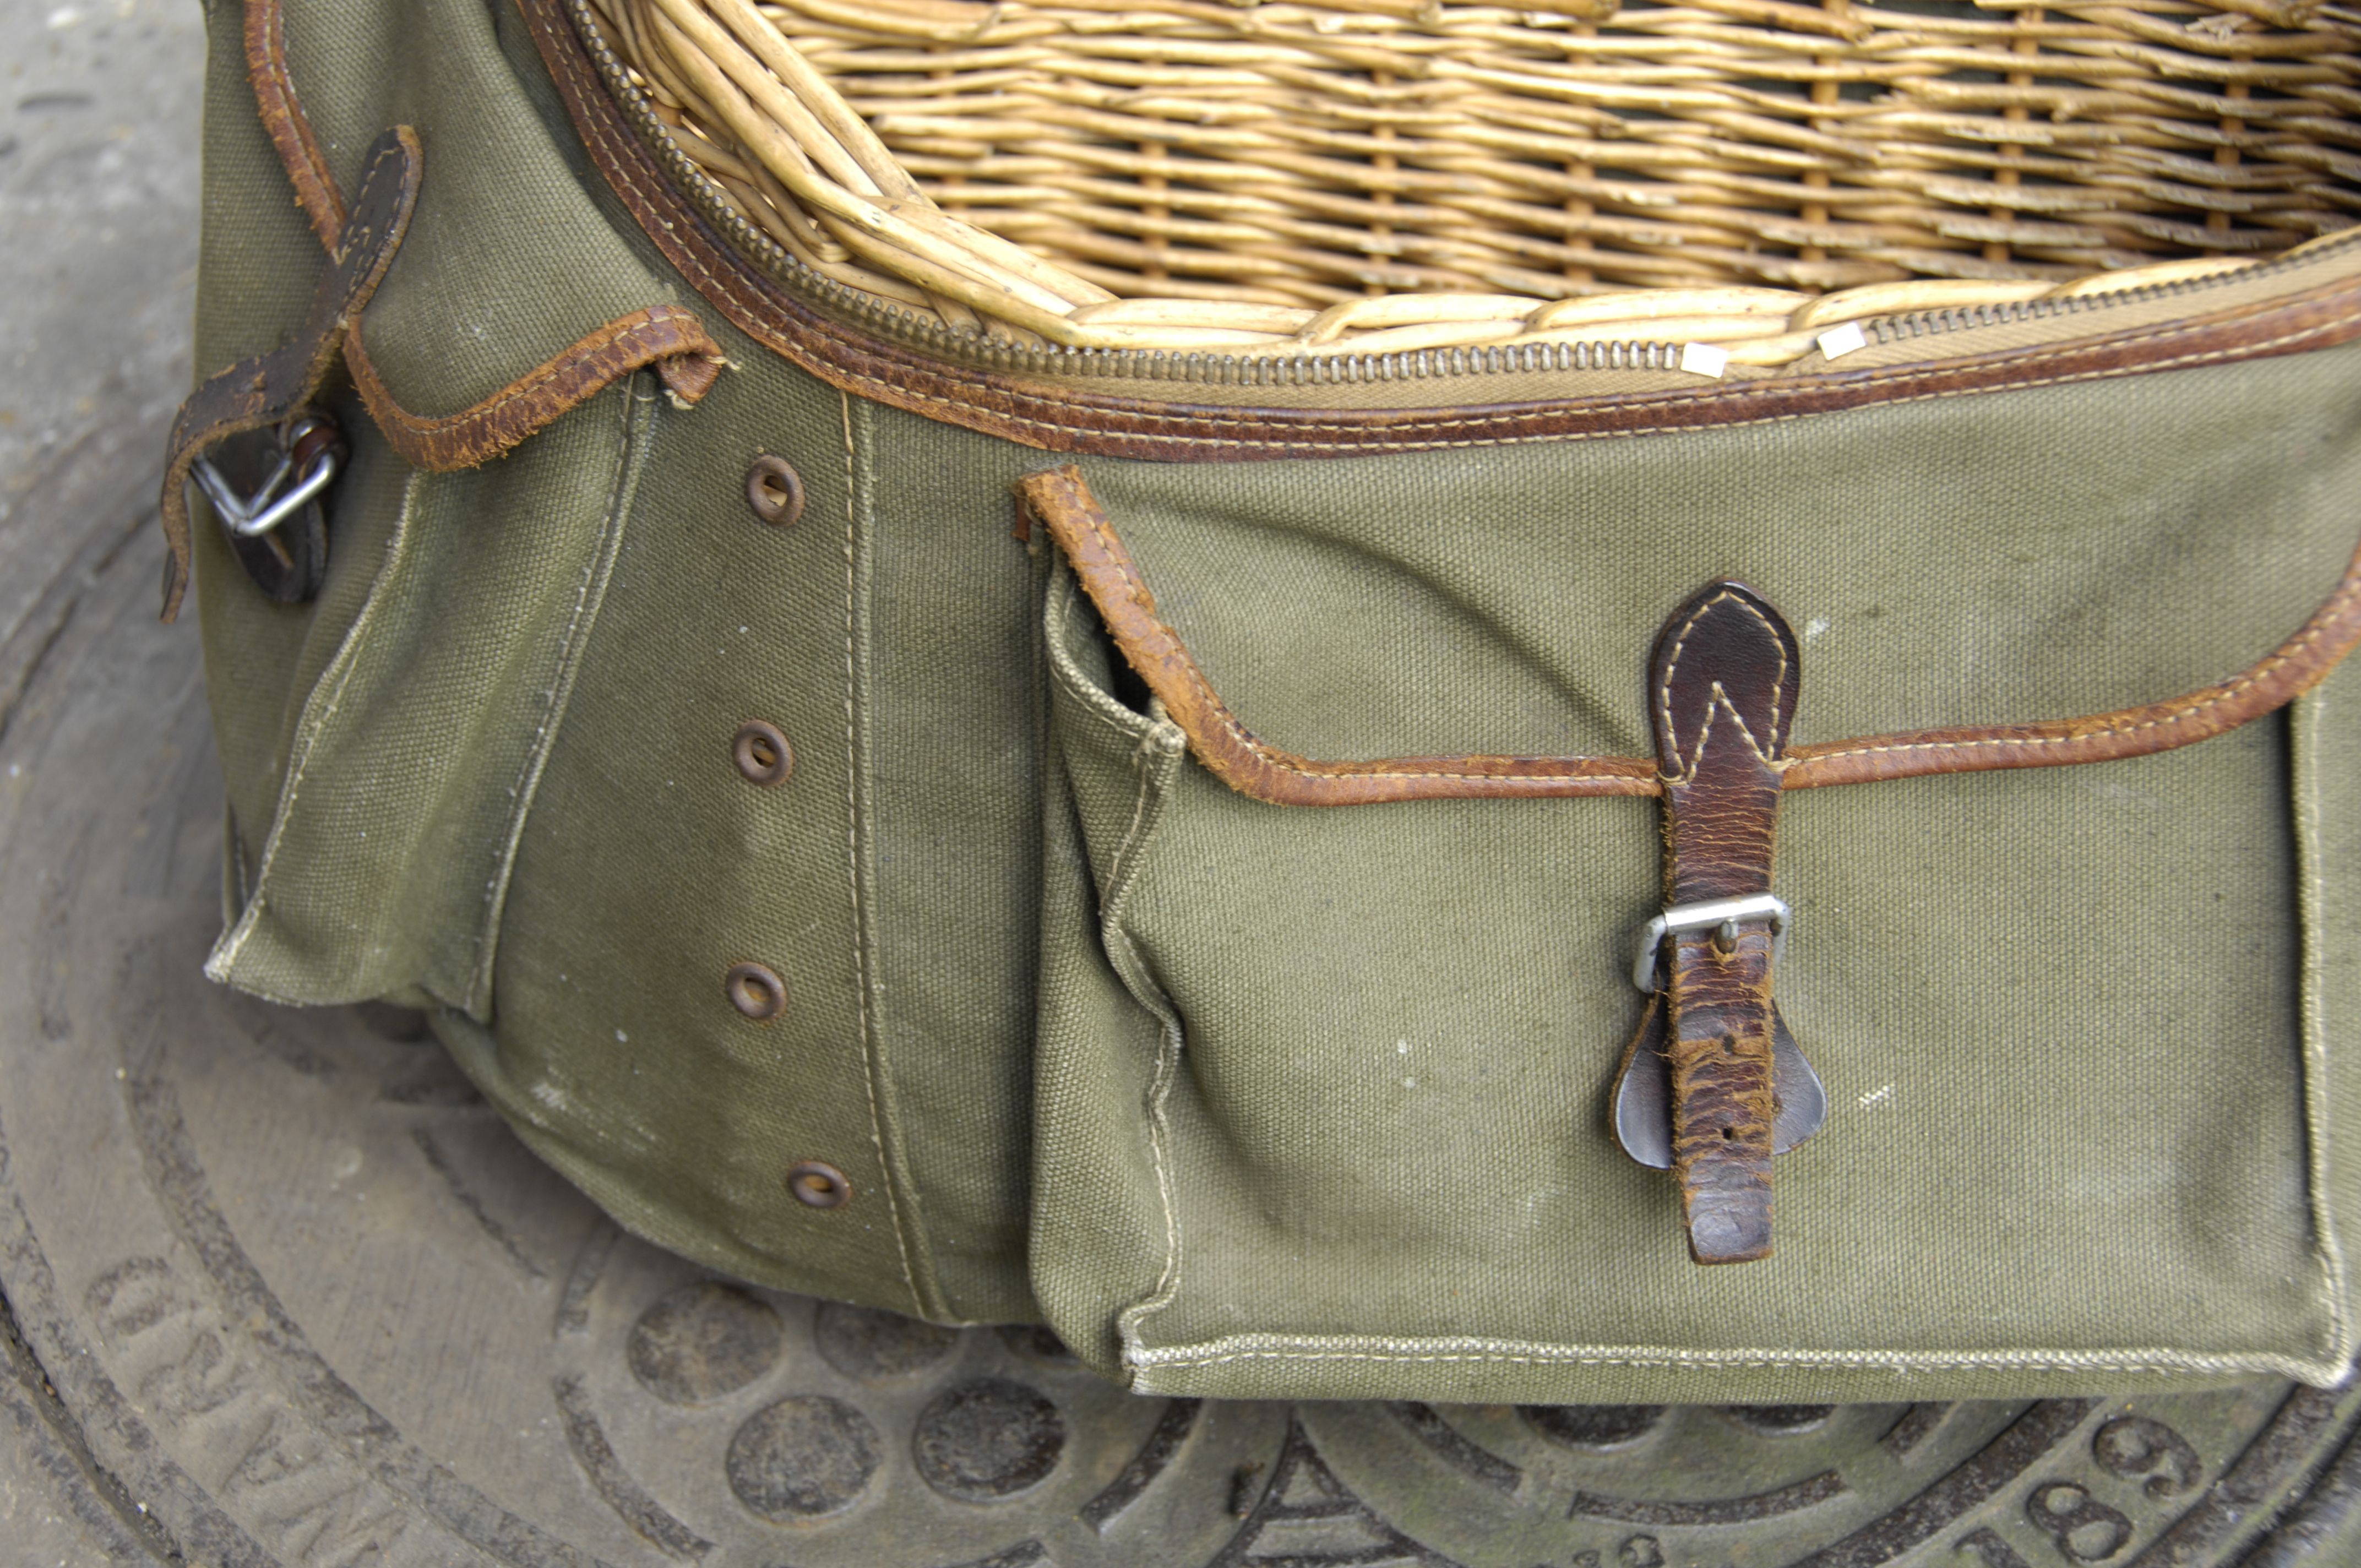 Bicycle Luggage 2 Sologne Fishing Creel On 1946 Porteur